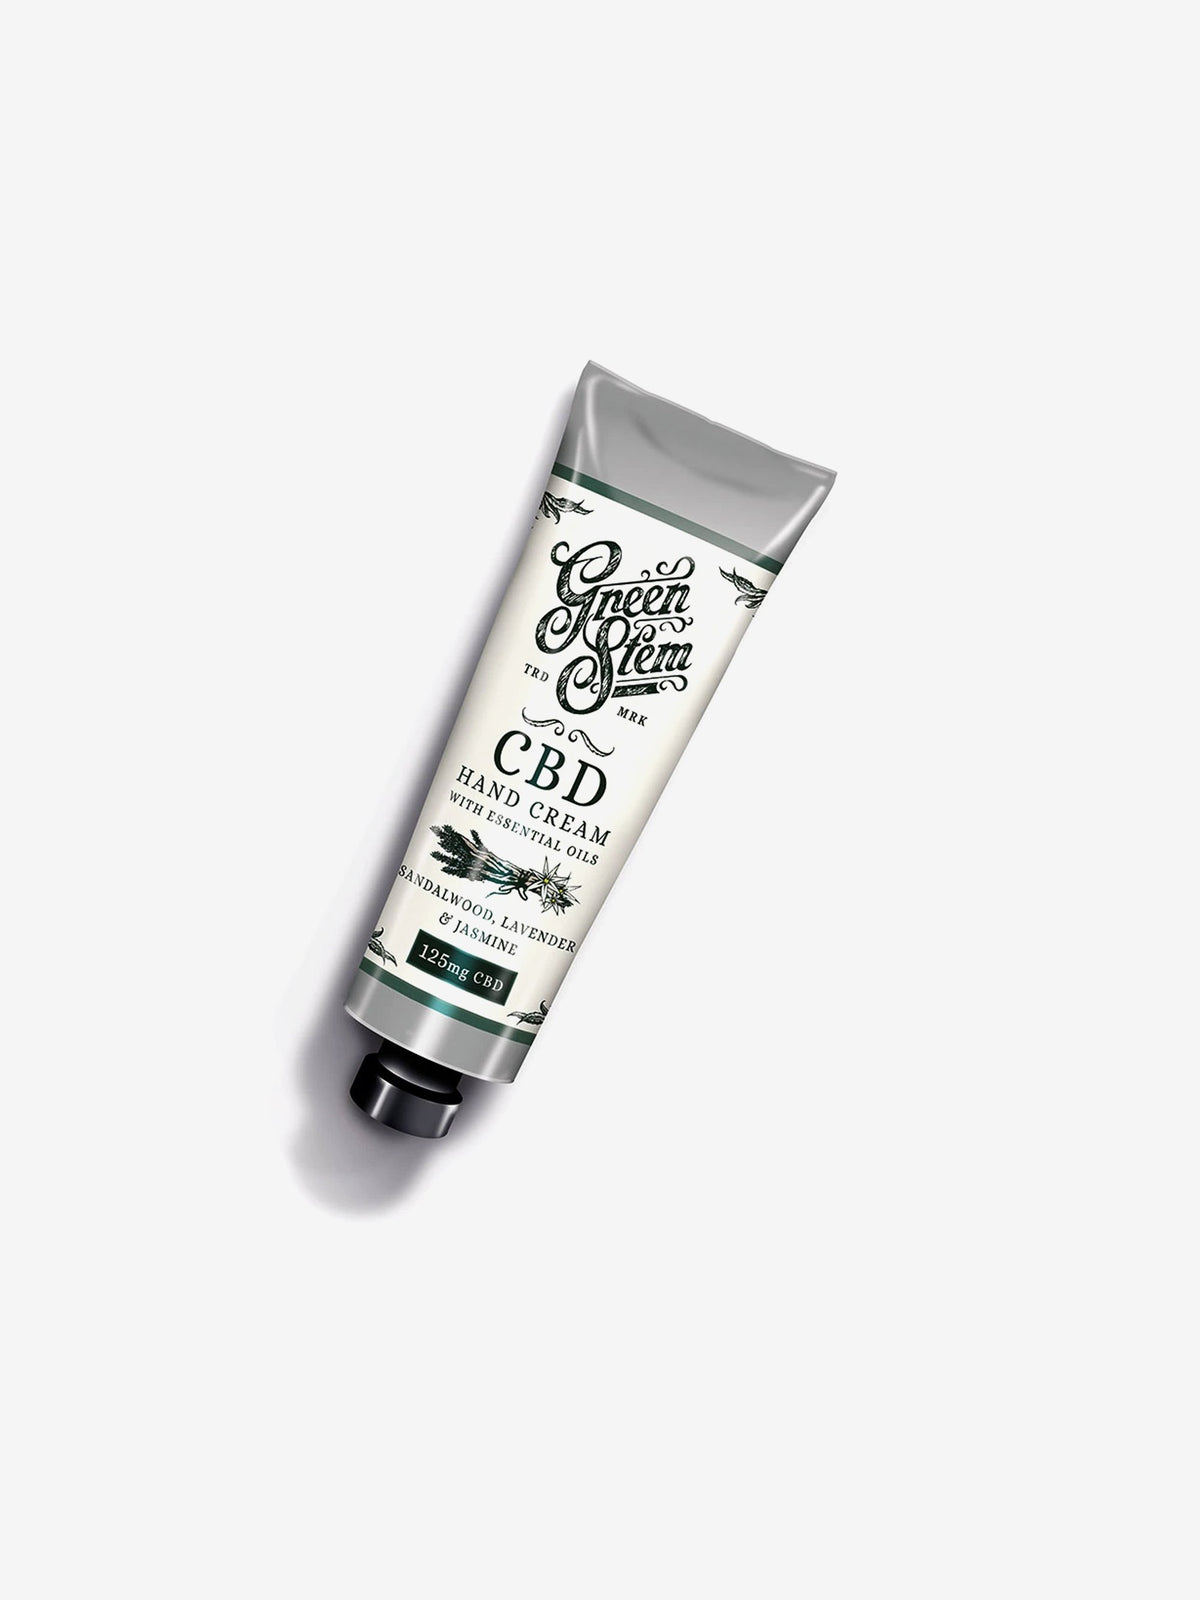 Green Stem Hand Cream Sandalwood, Lavender & Jasmine 75ml